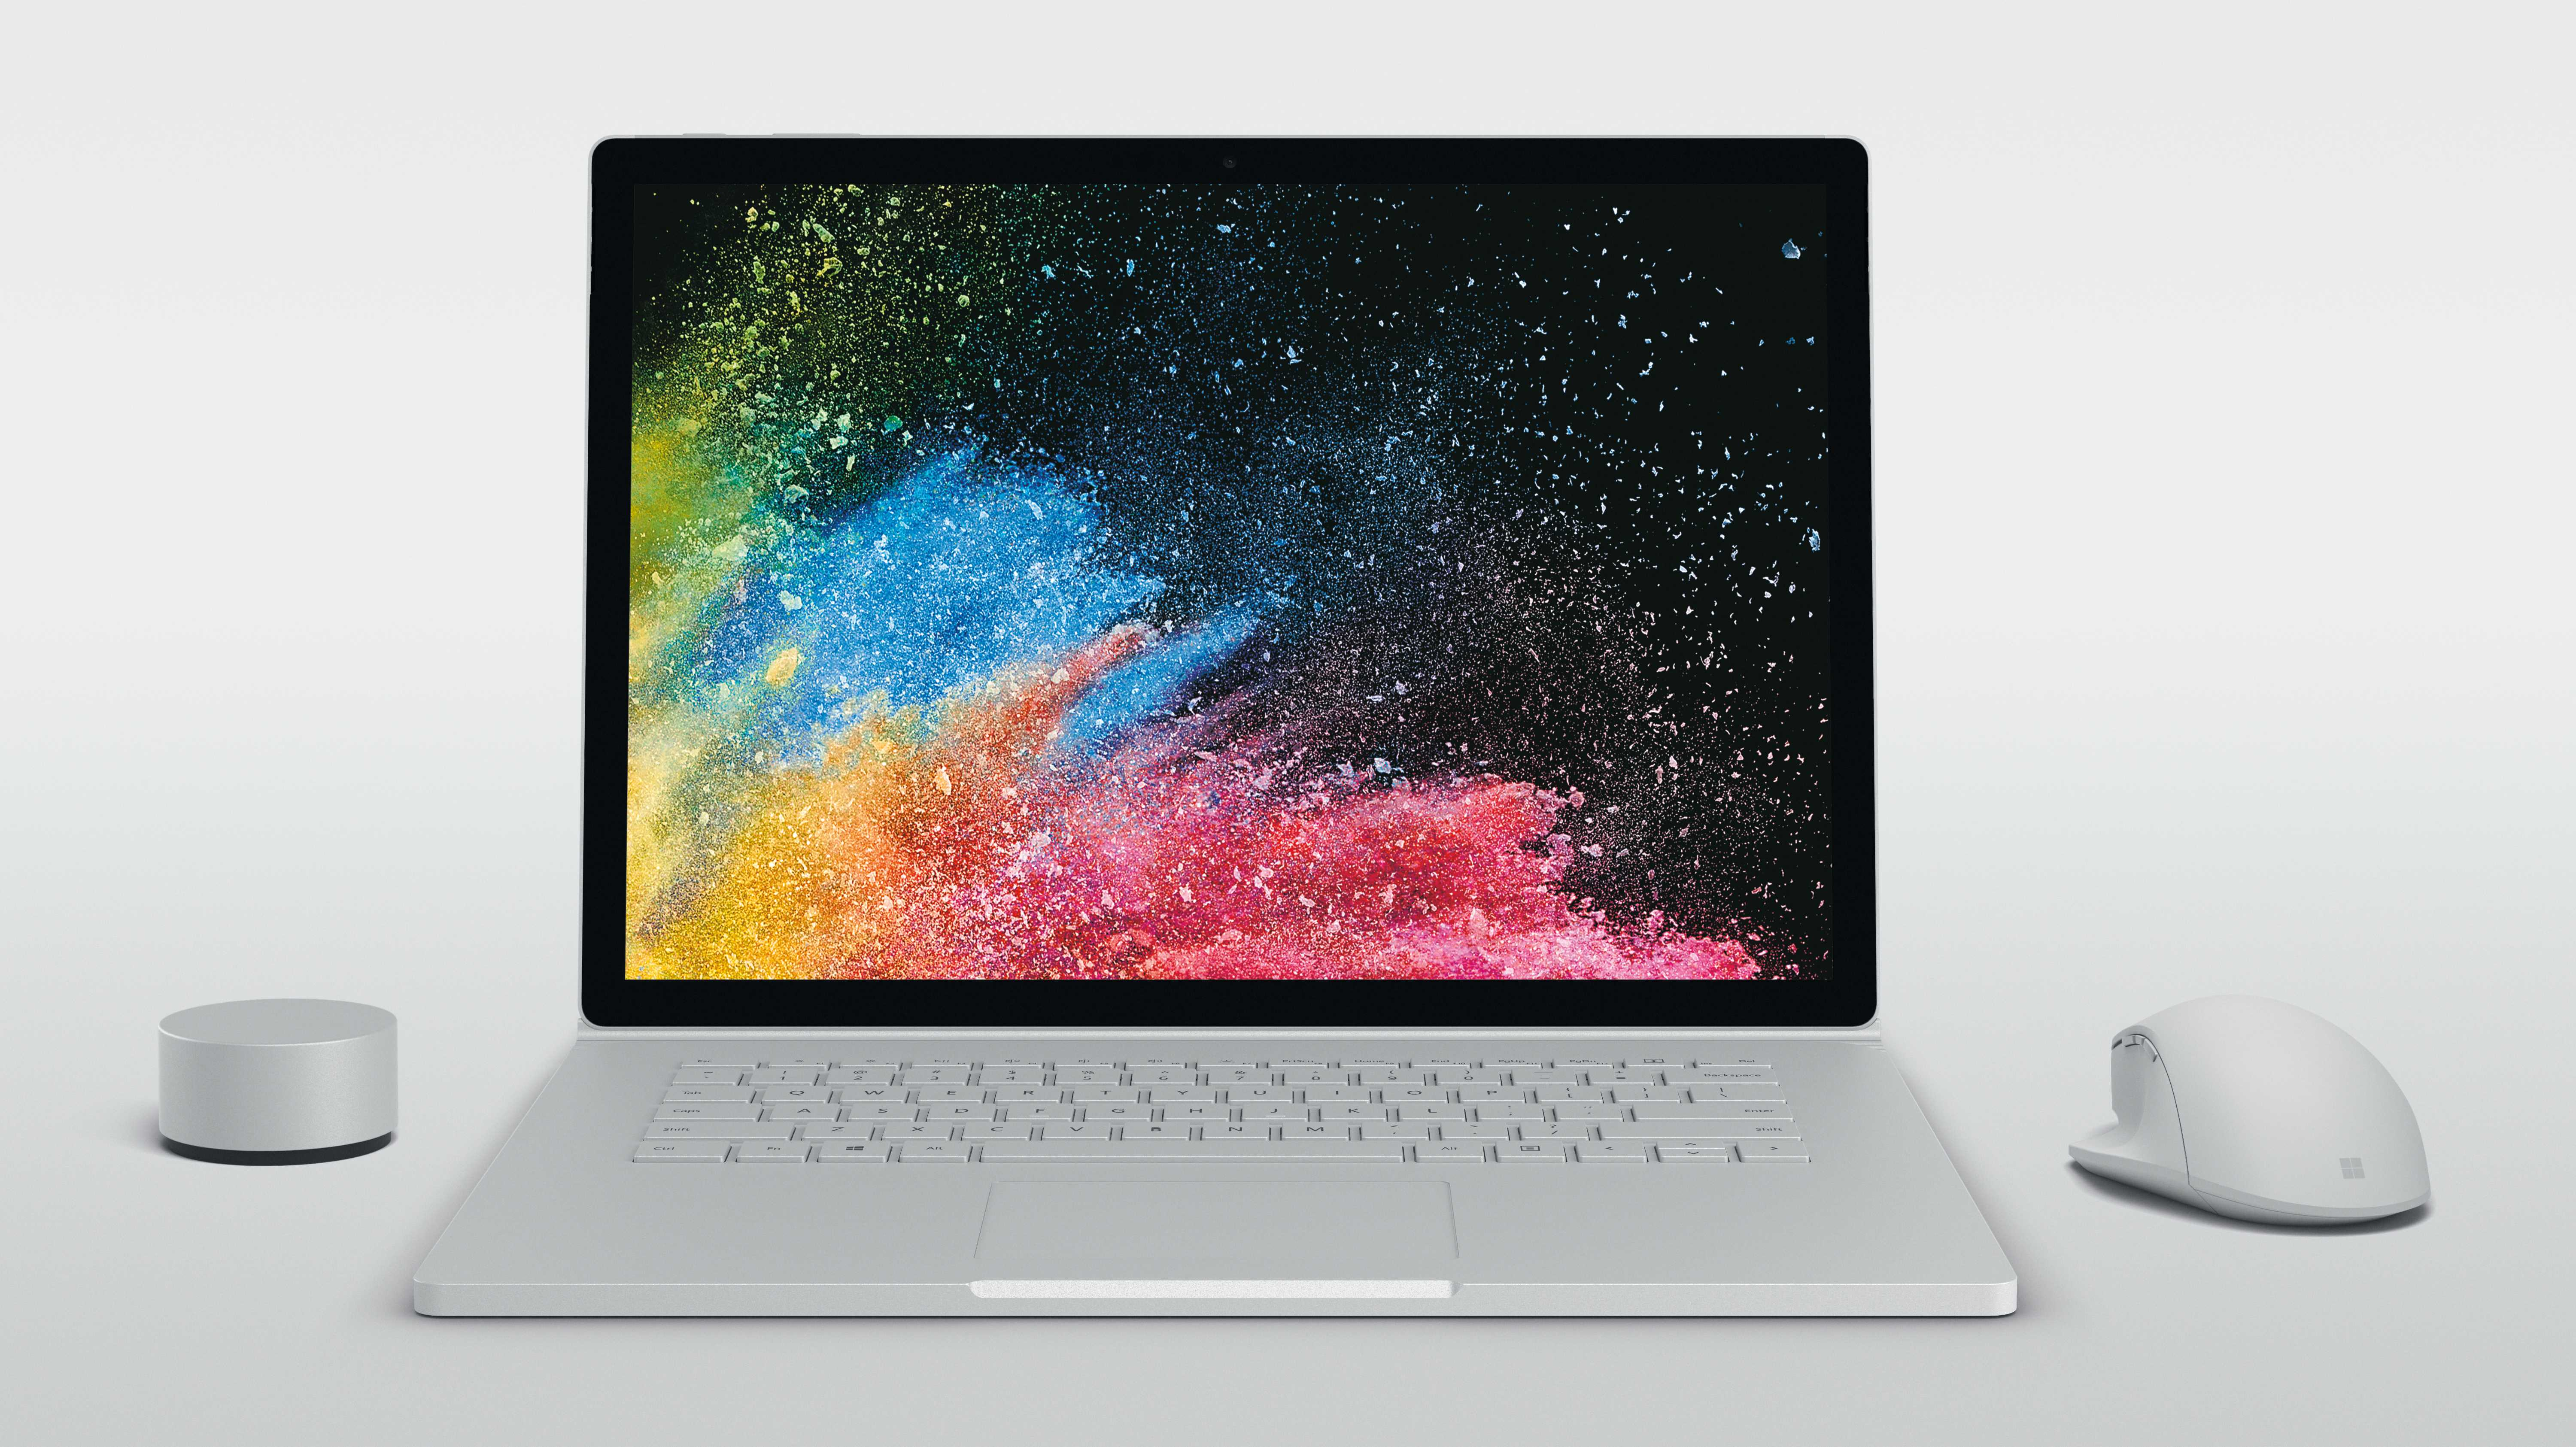 Microsoft Surface Book 2: Jetzt auch mit 15-Zoll-Display ab 2800 Euro